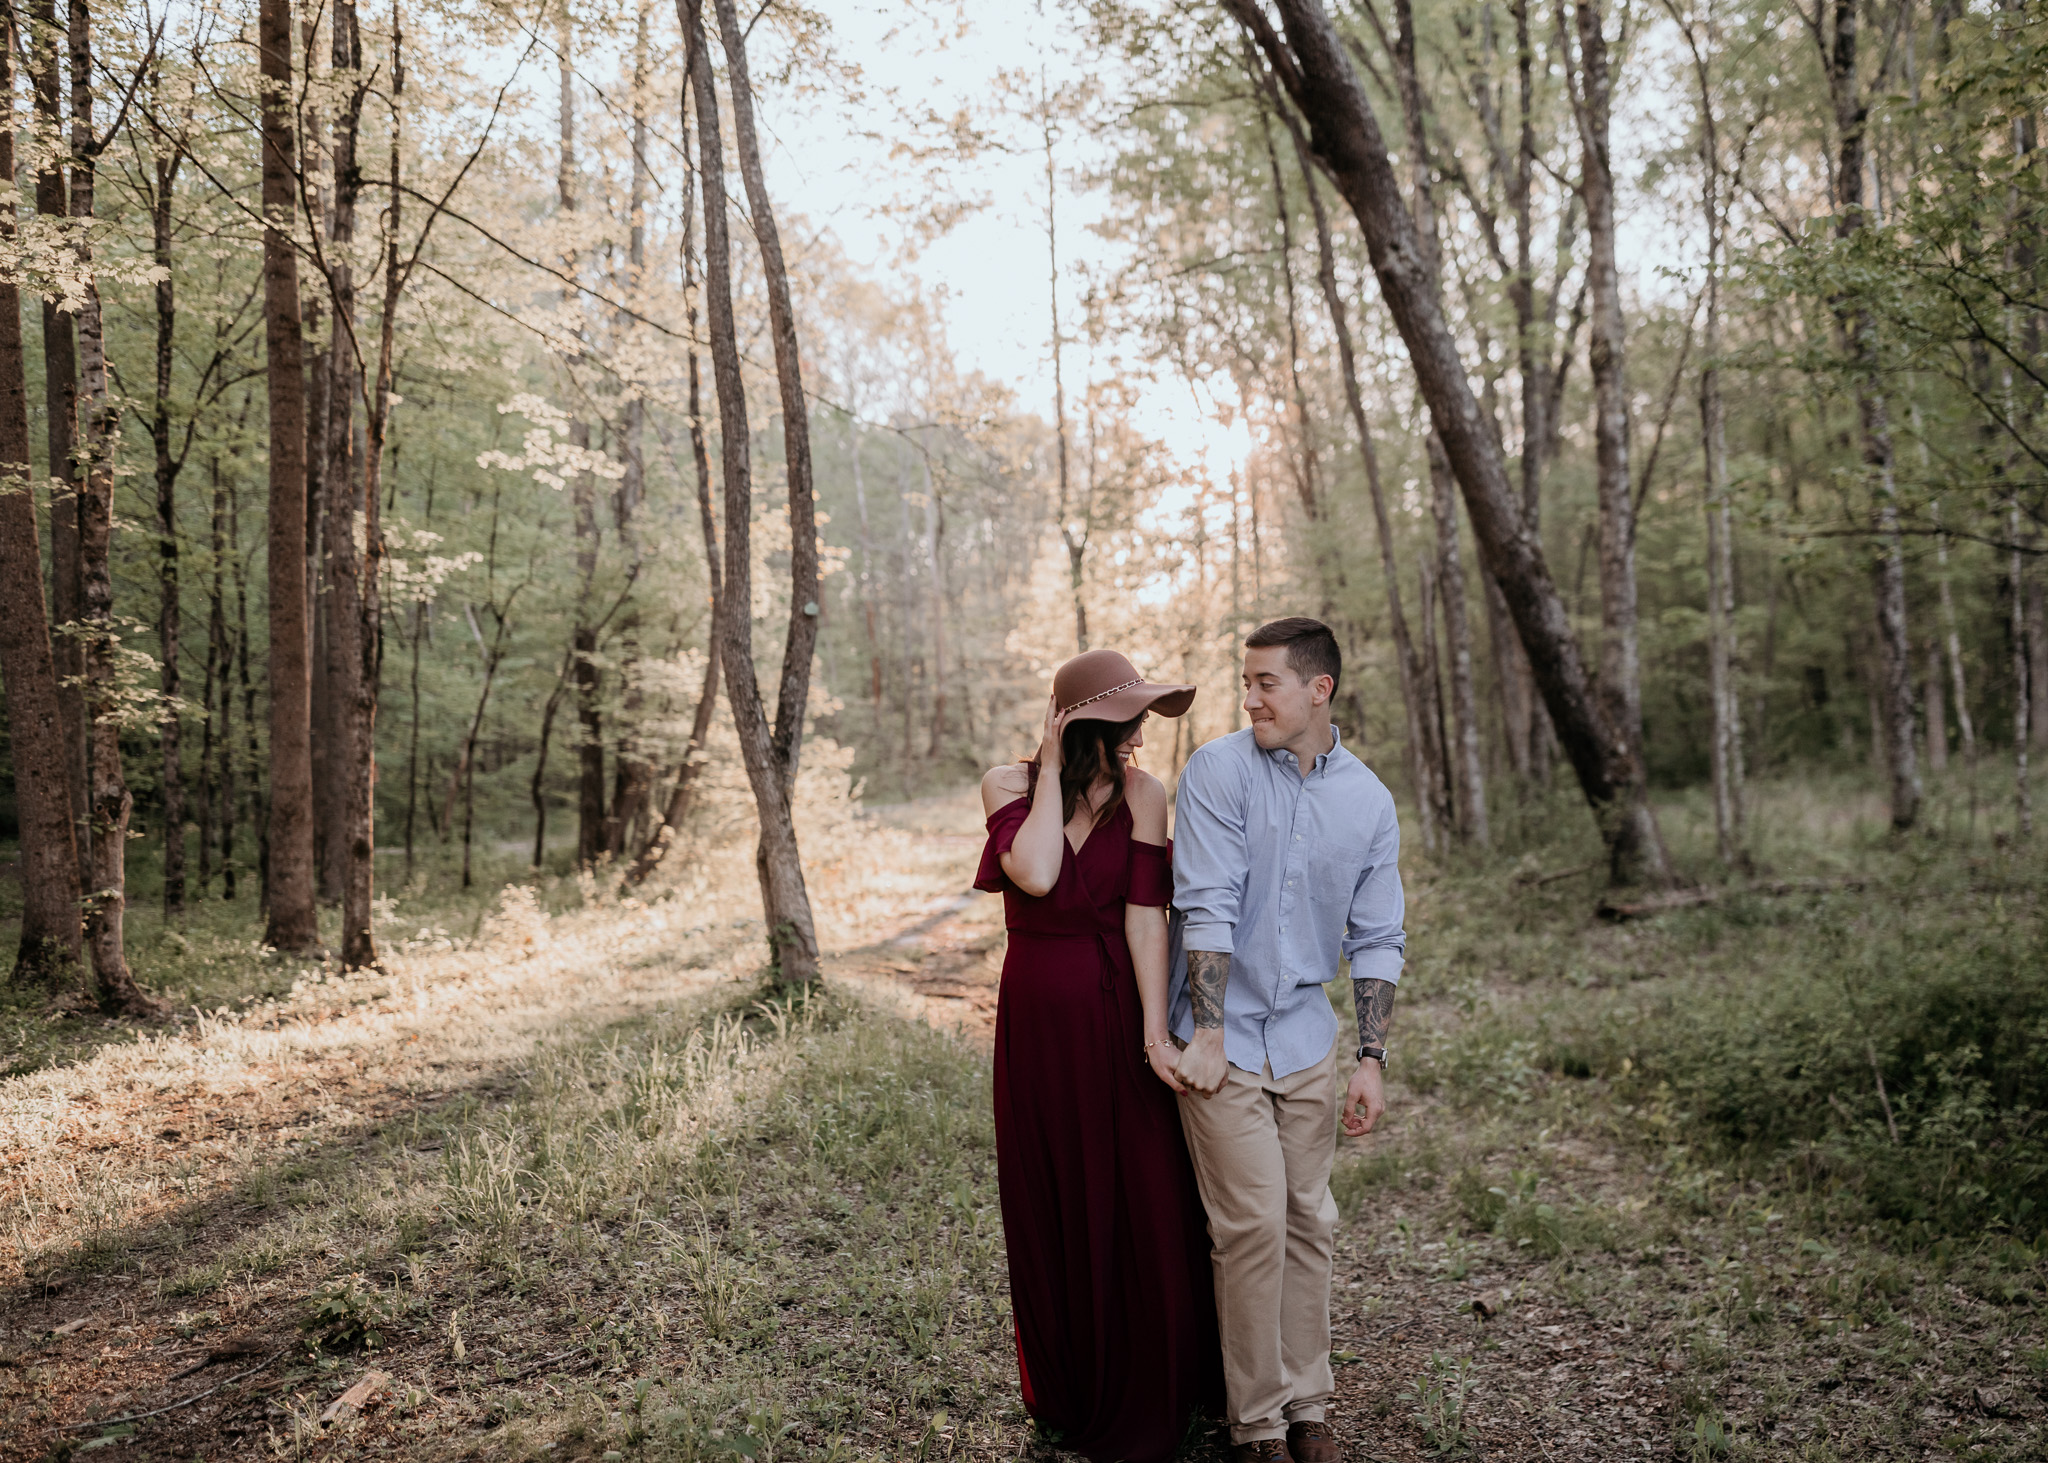 Engagement photo of couple with woman in maxi dress and hat